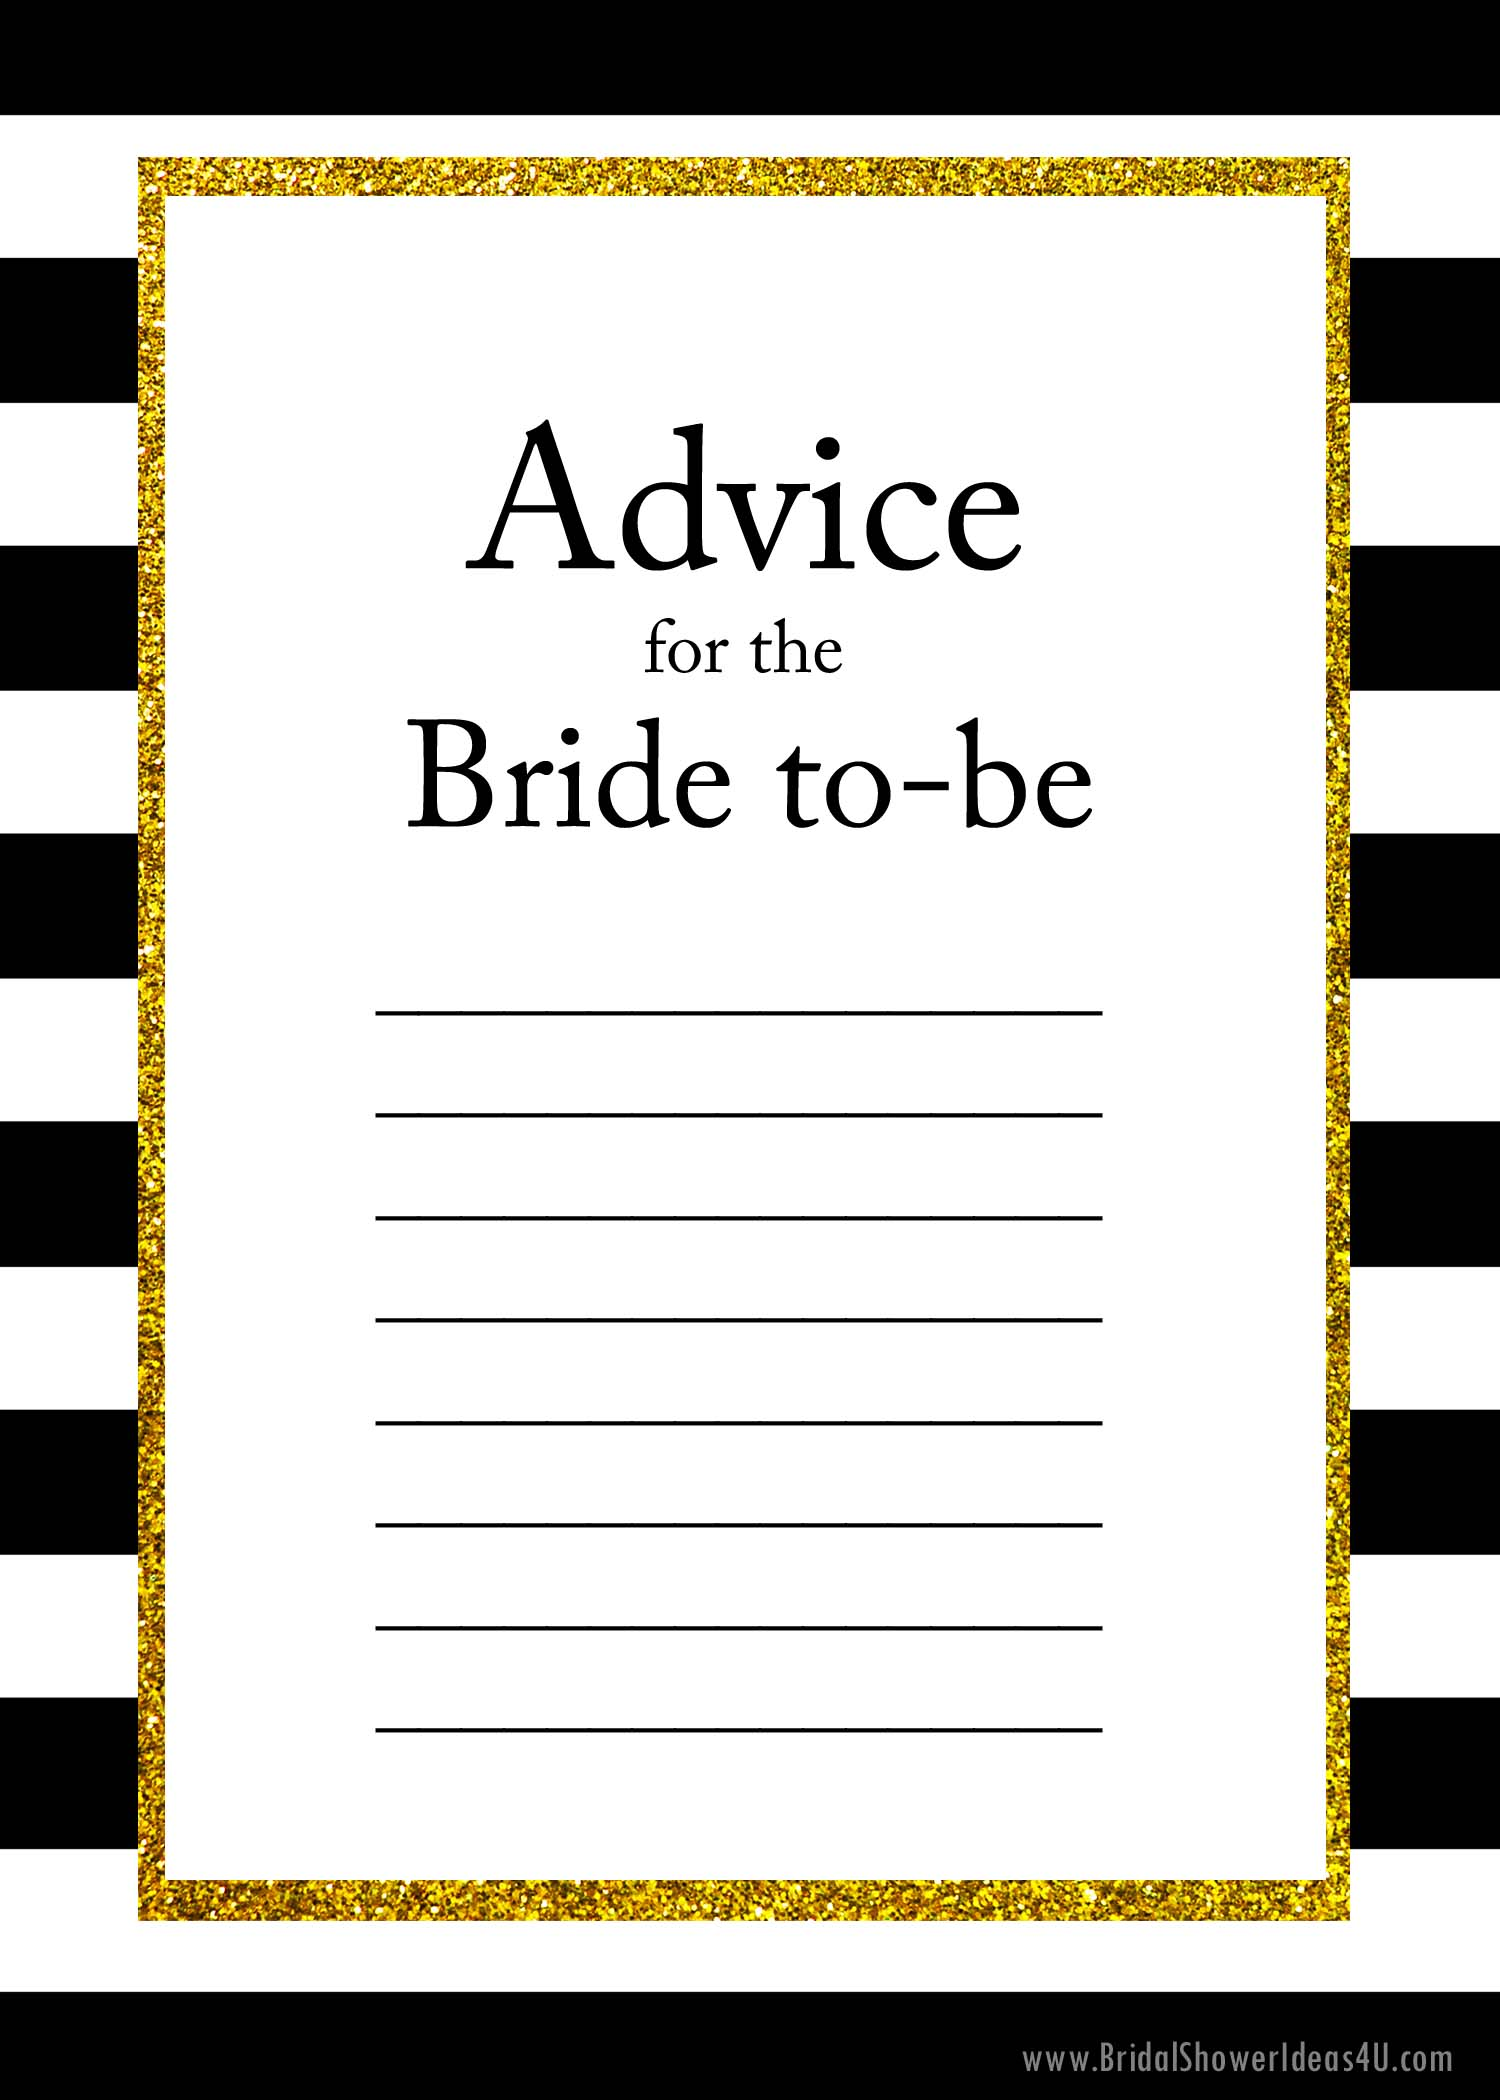 Free printable advice for the bride to be cards for Templates for bridal shower games